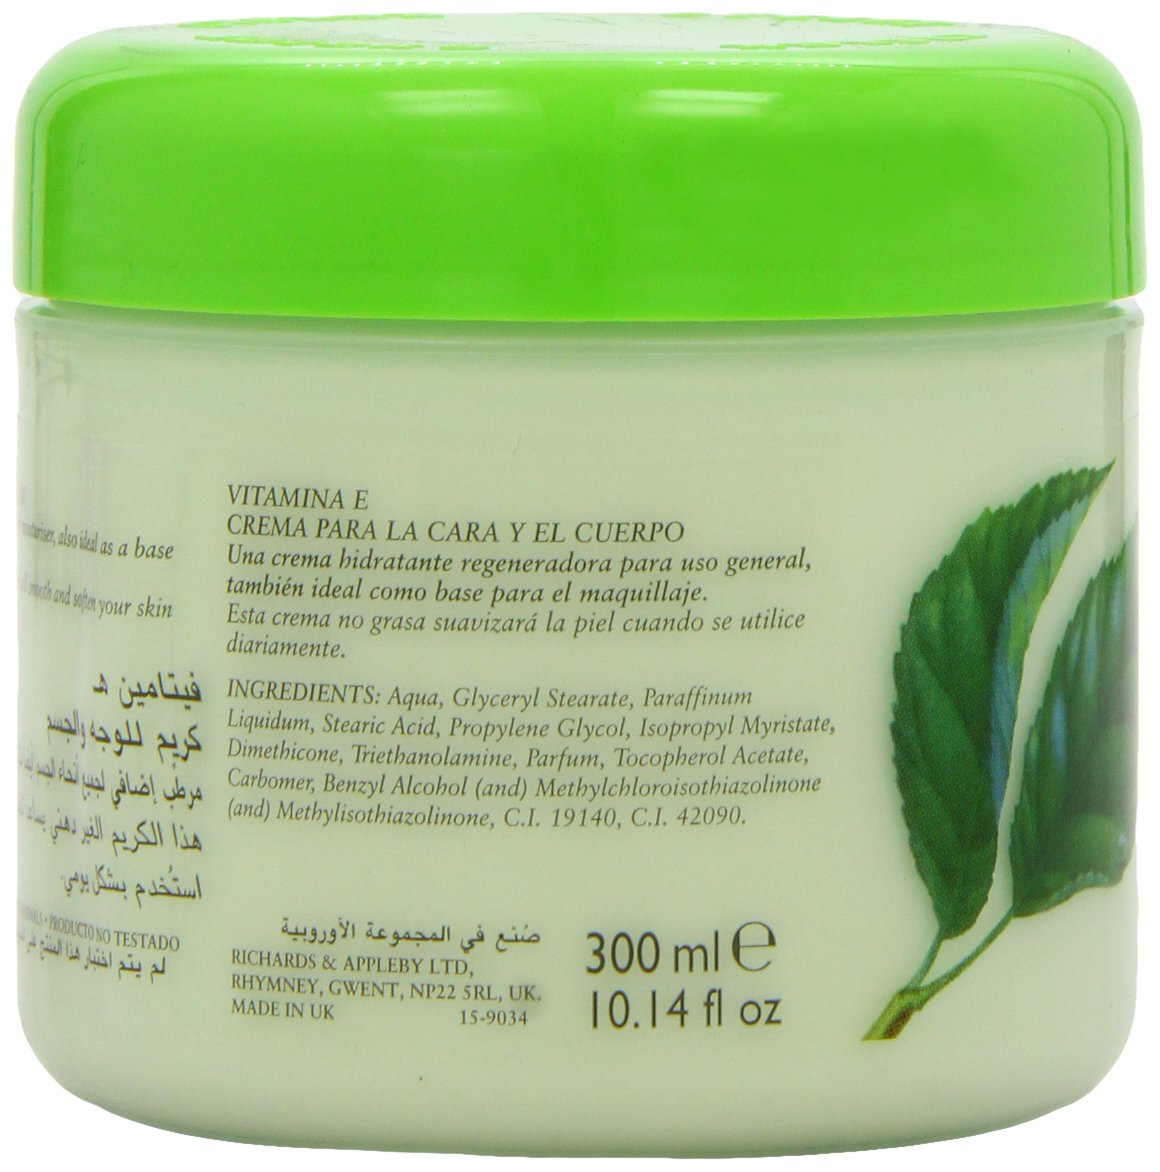 Cyclax Naturaleza Pura vitamina E Face & Body Cream 300ml: Amazon.es: Belleza